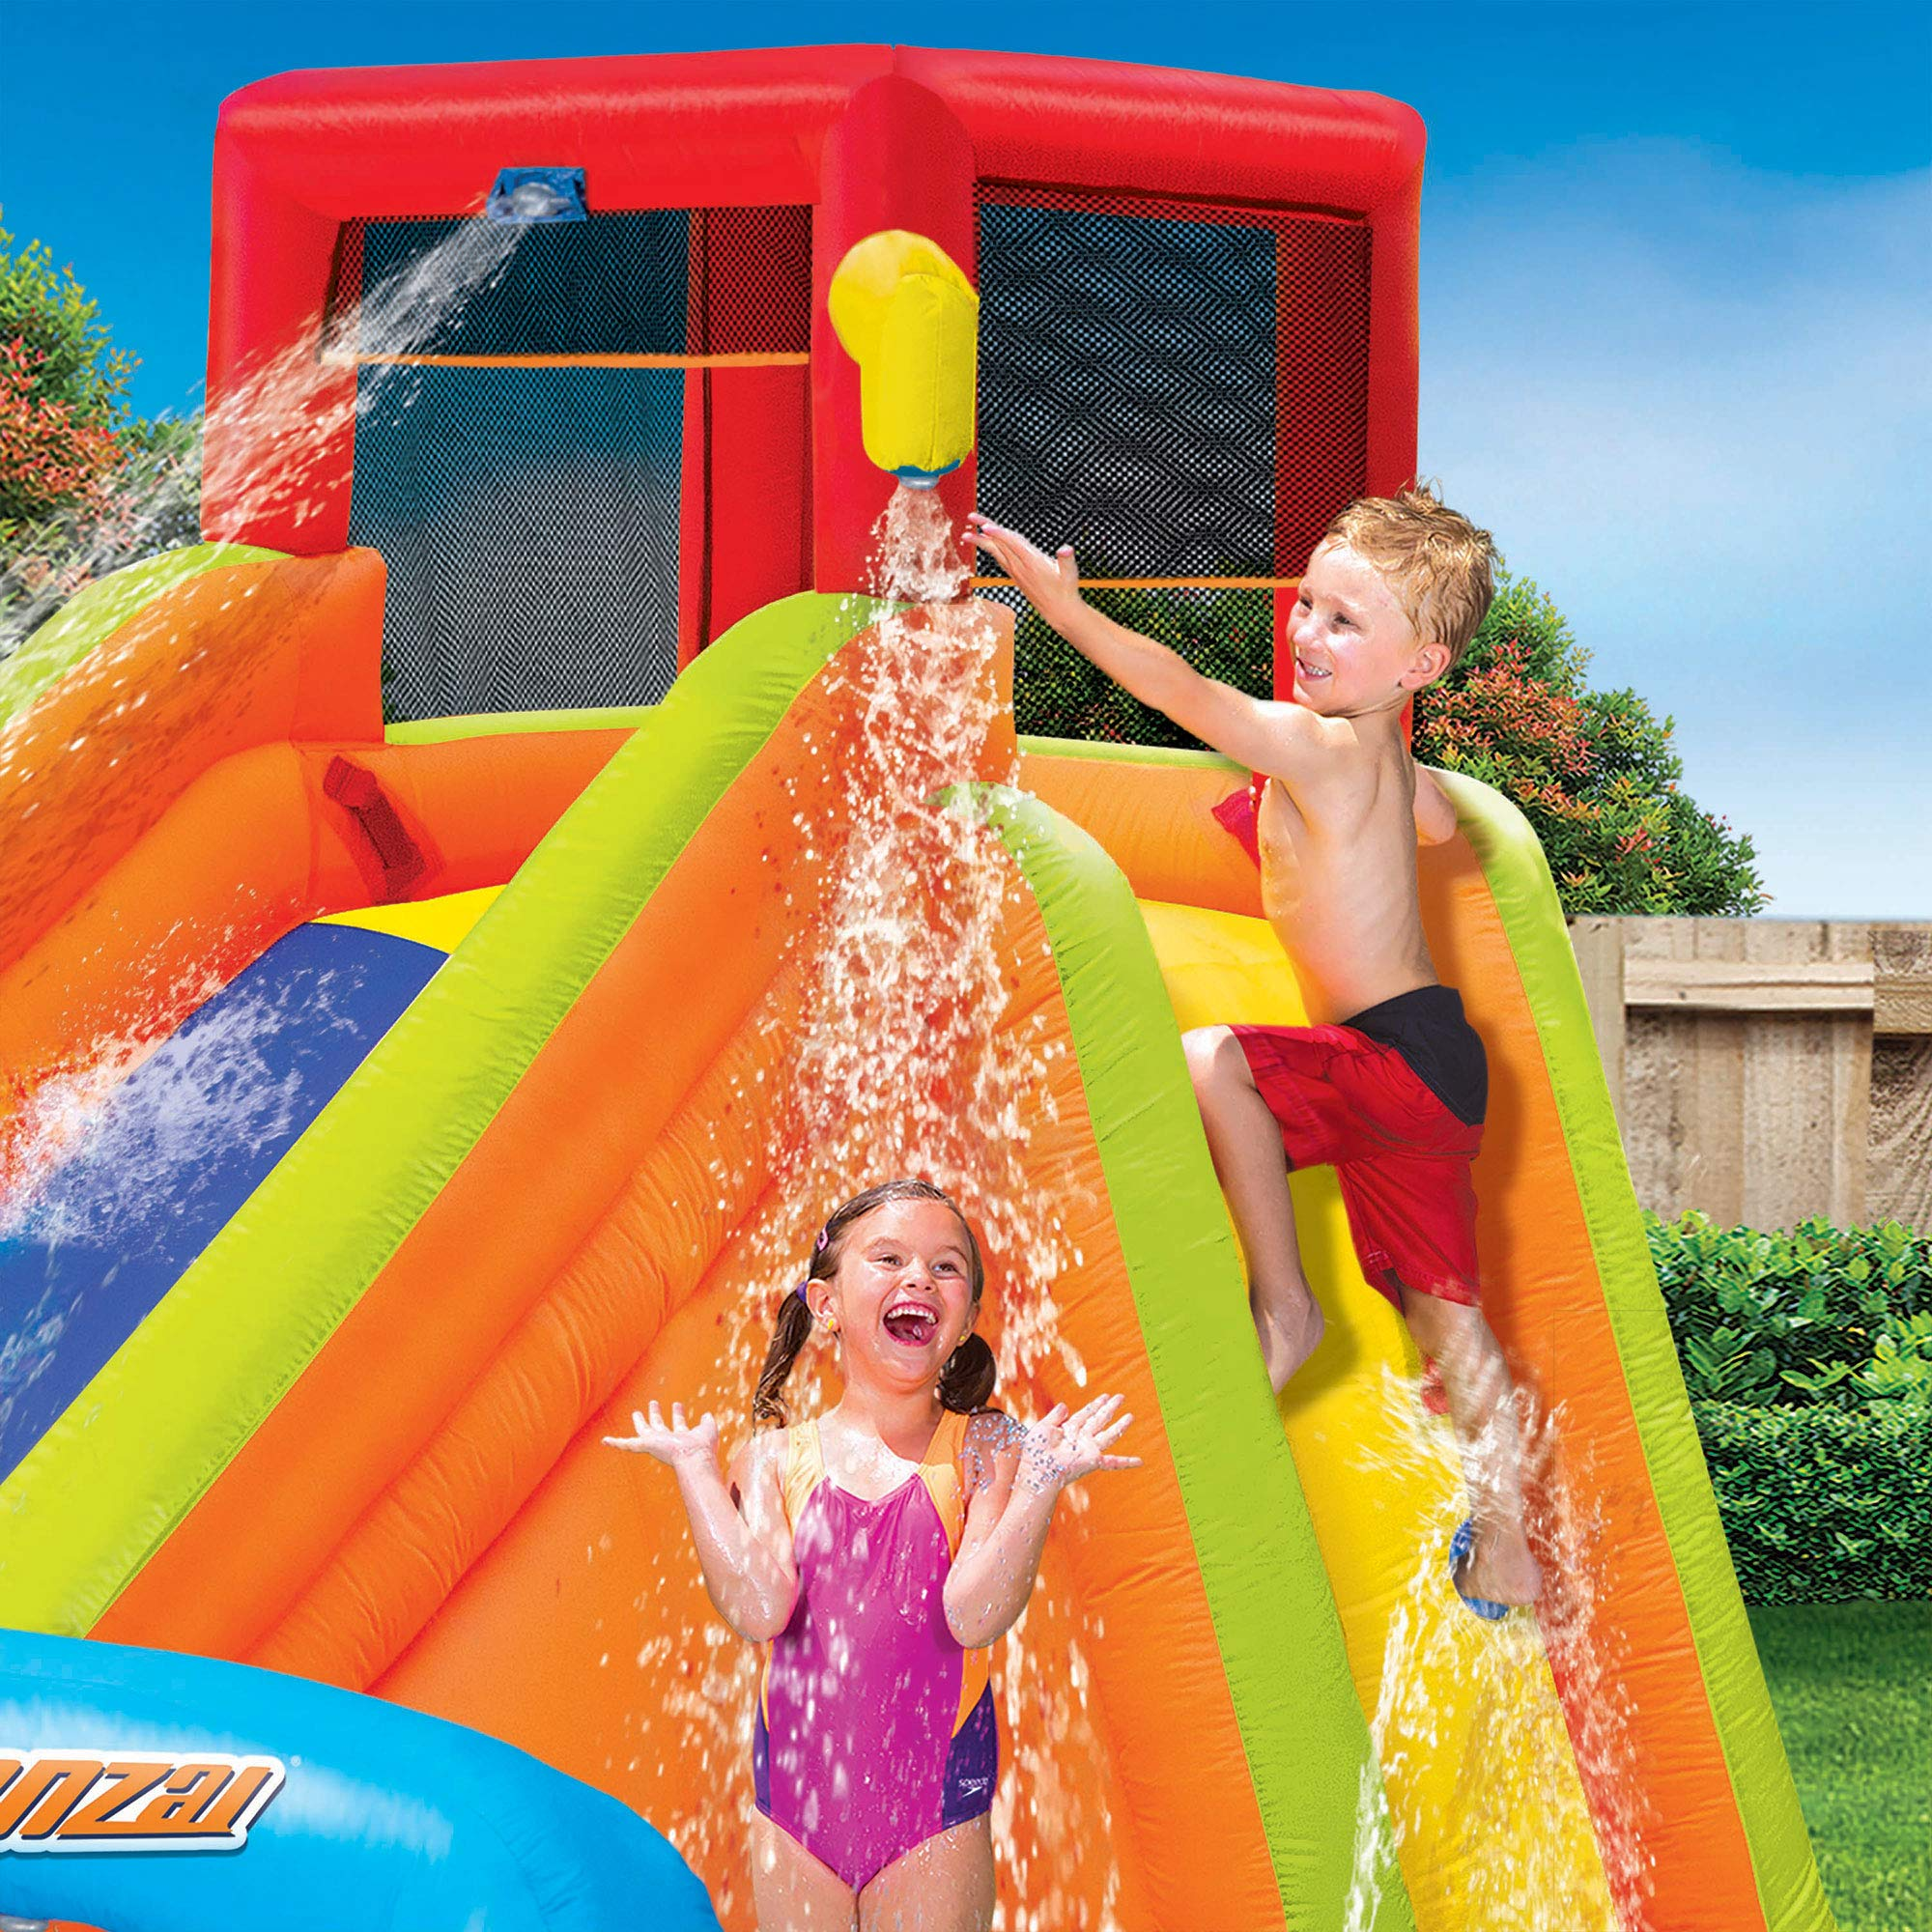 BANZAI Lazy River Inflatable Outdoor Adventure Water Park Slide and Splash Pool by BANZAI (Image #3)